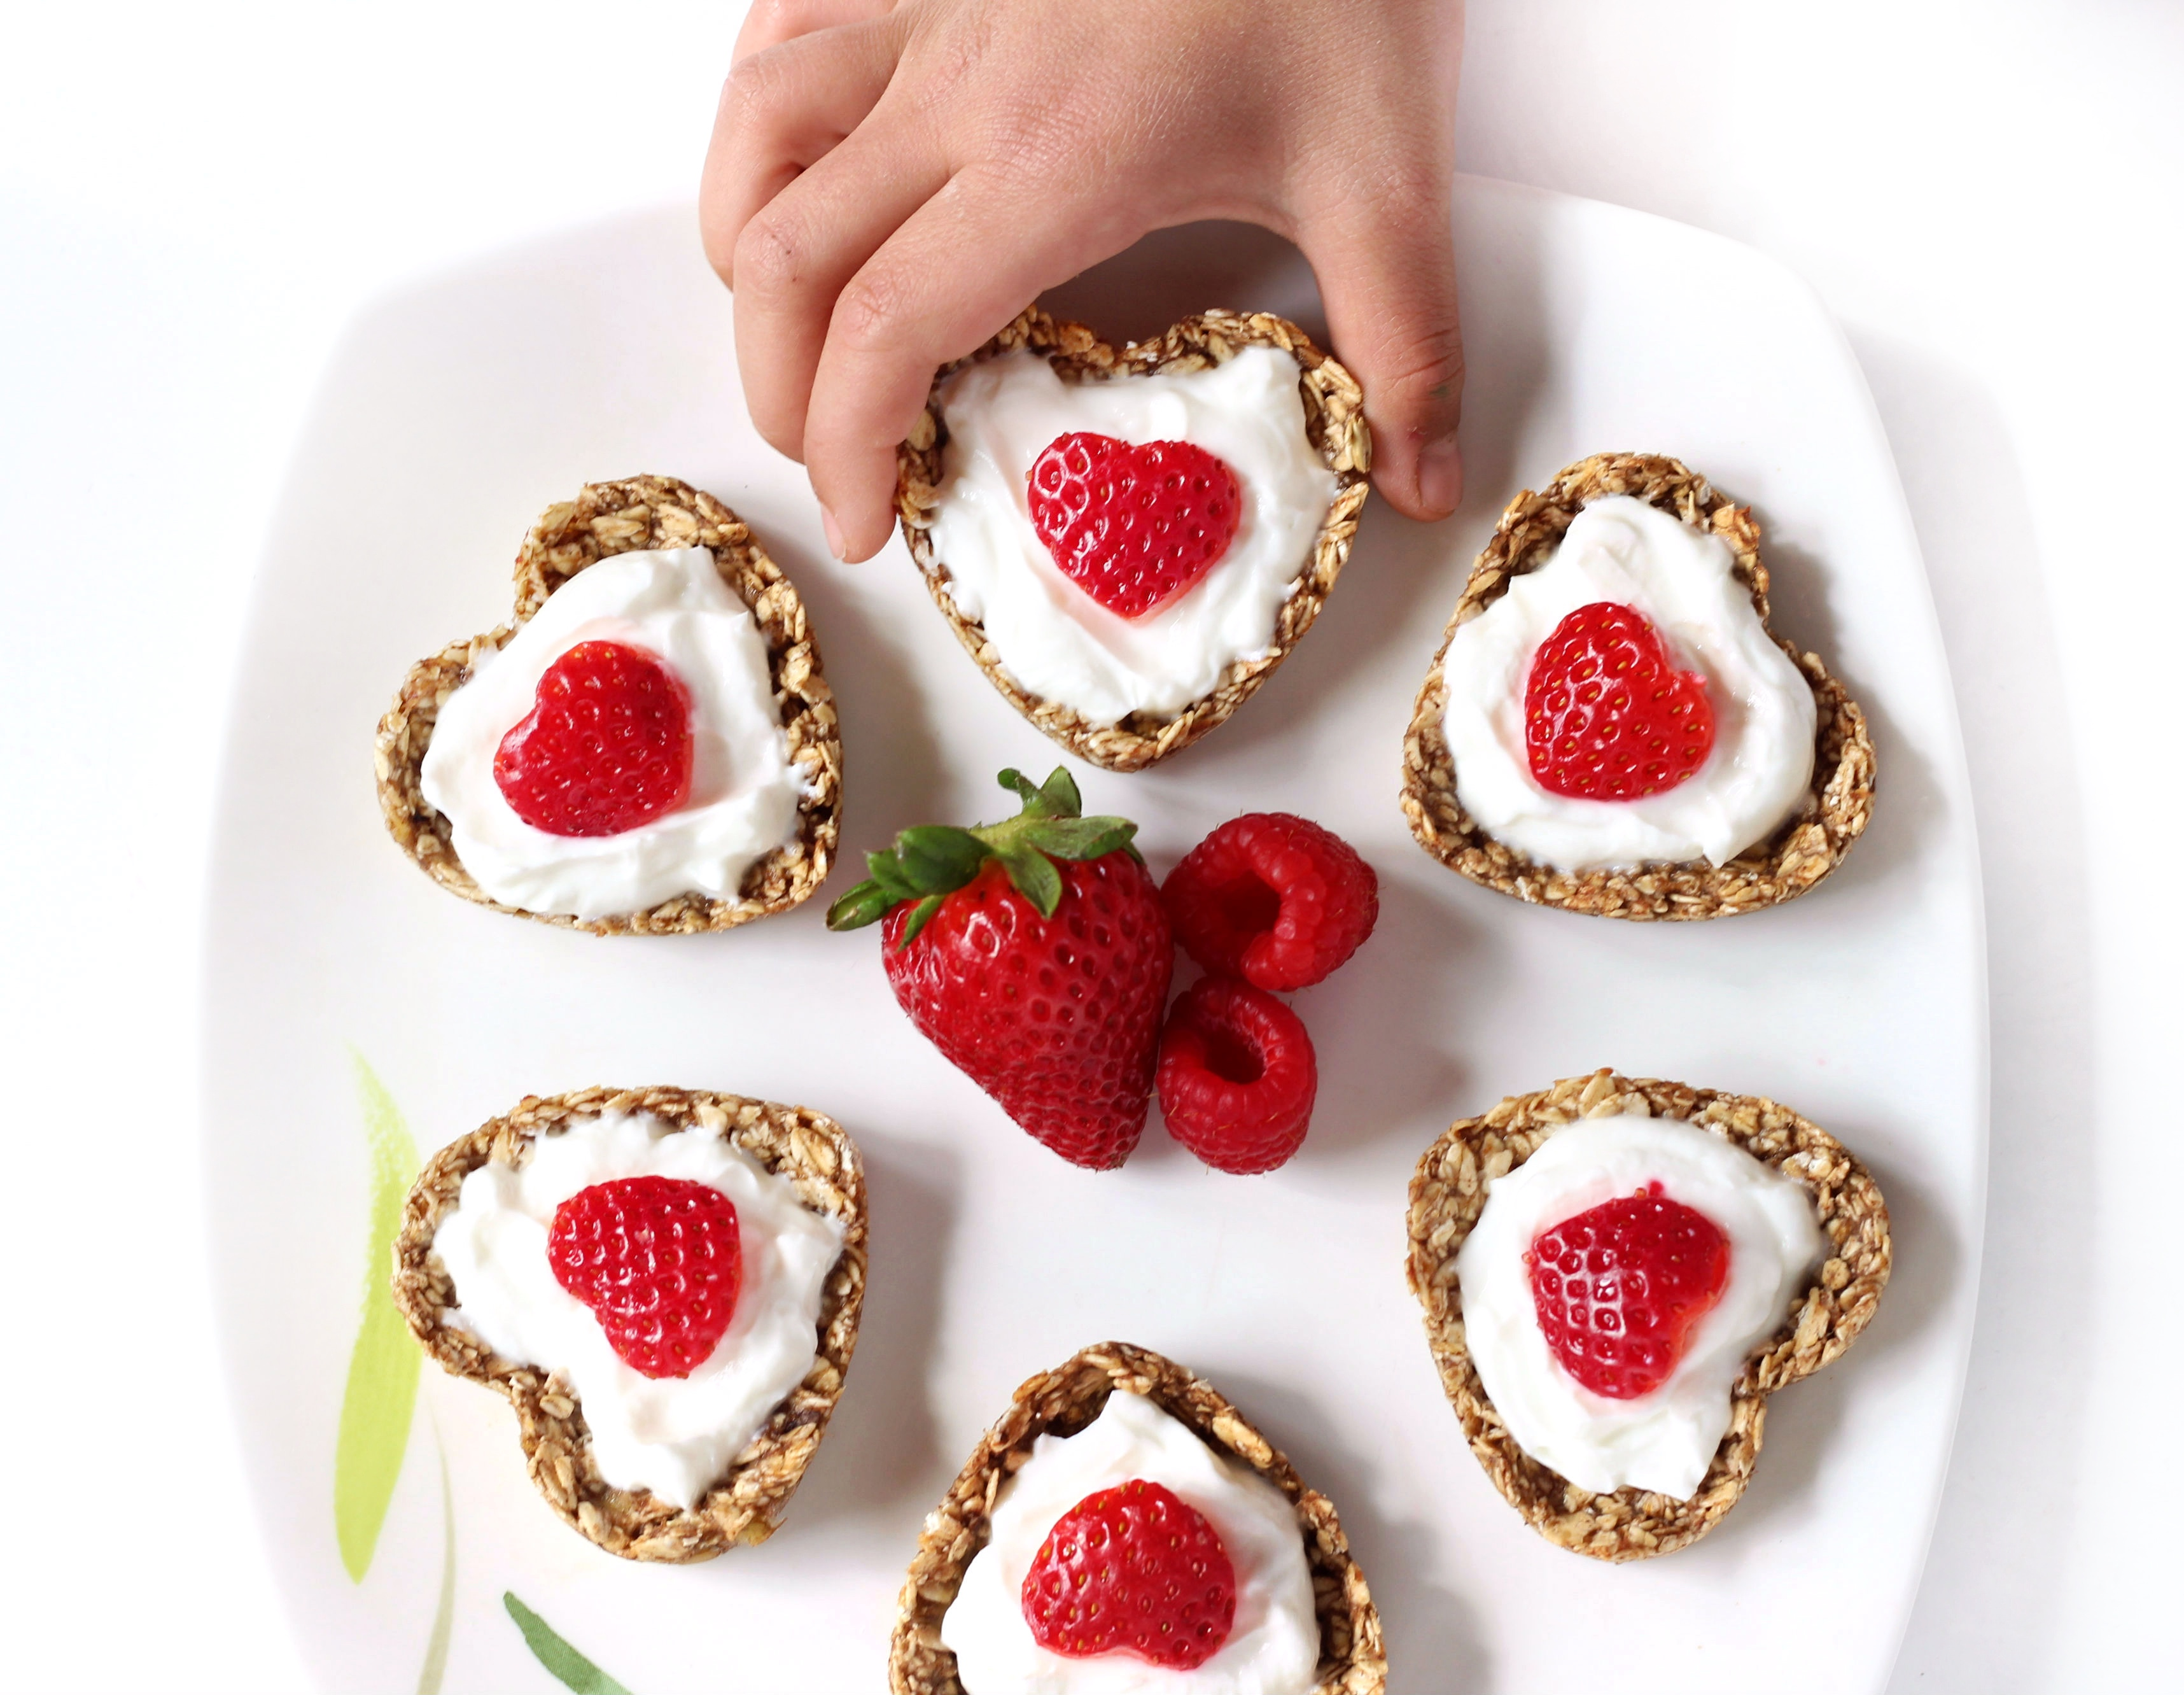 Heart-Shaped Yogurt Parfait Oatmeal Cups with Raspberry Compote